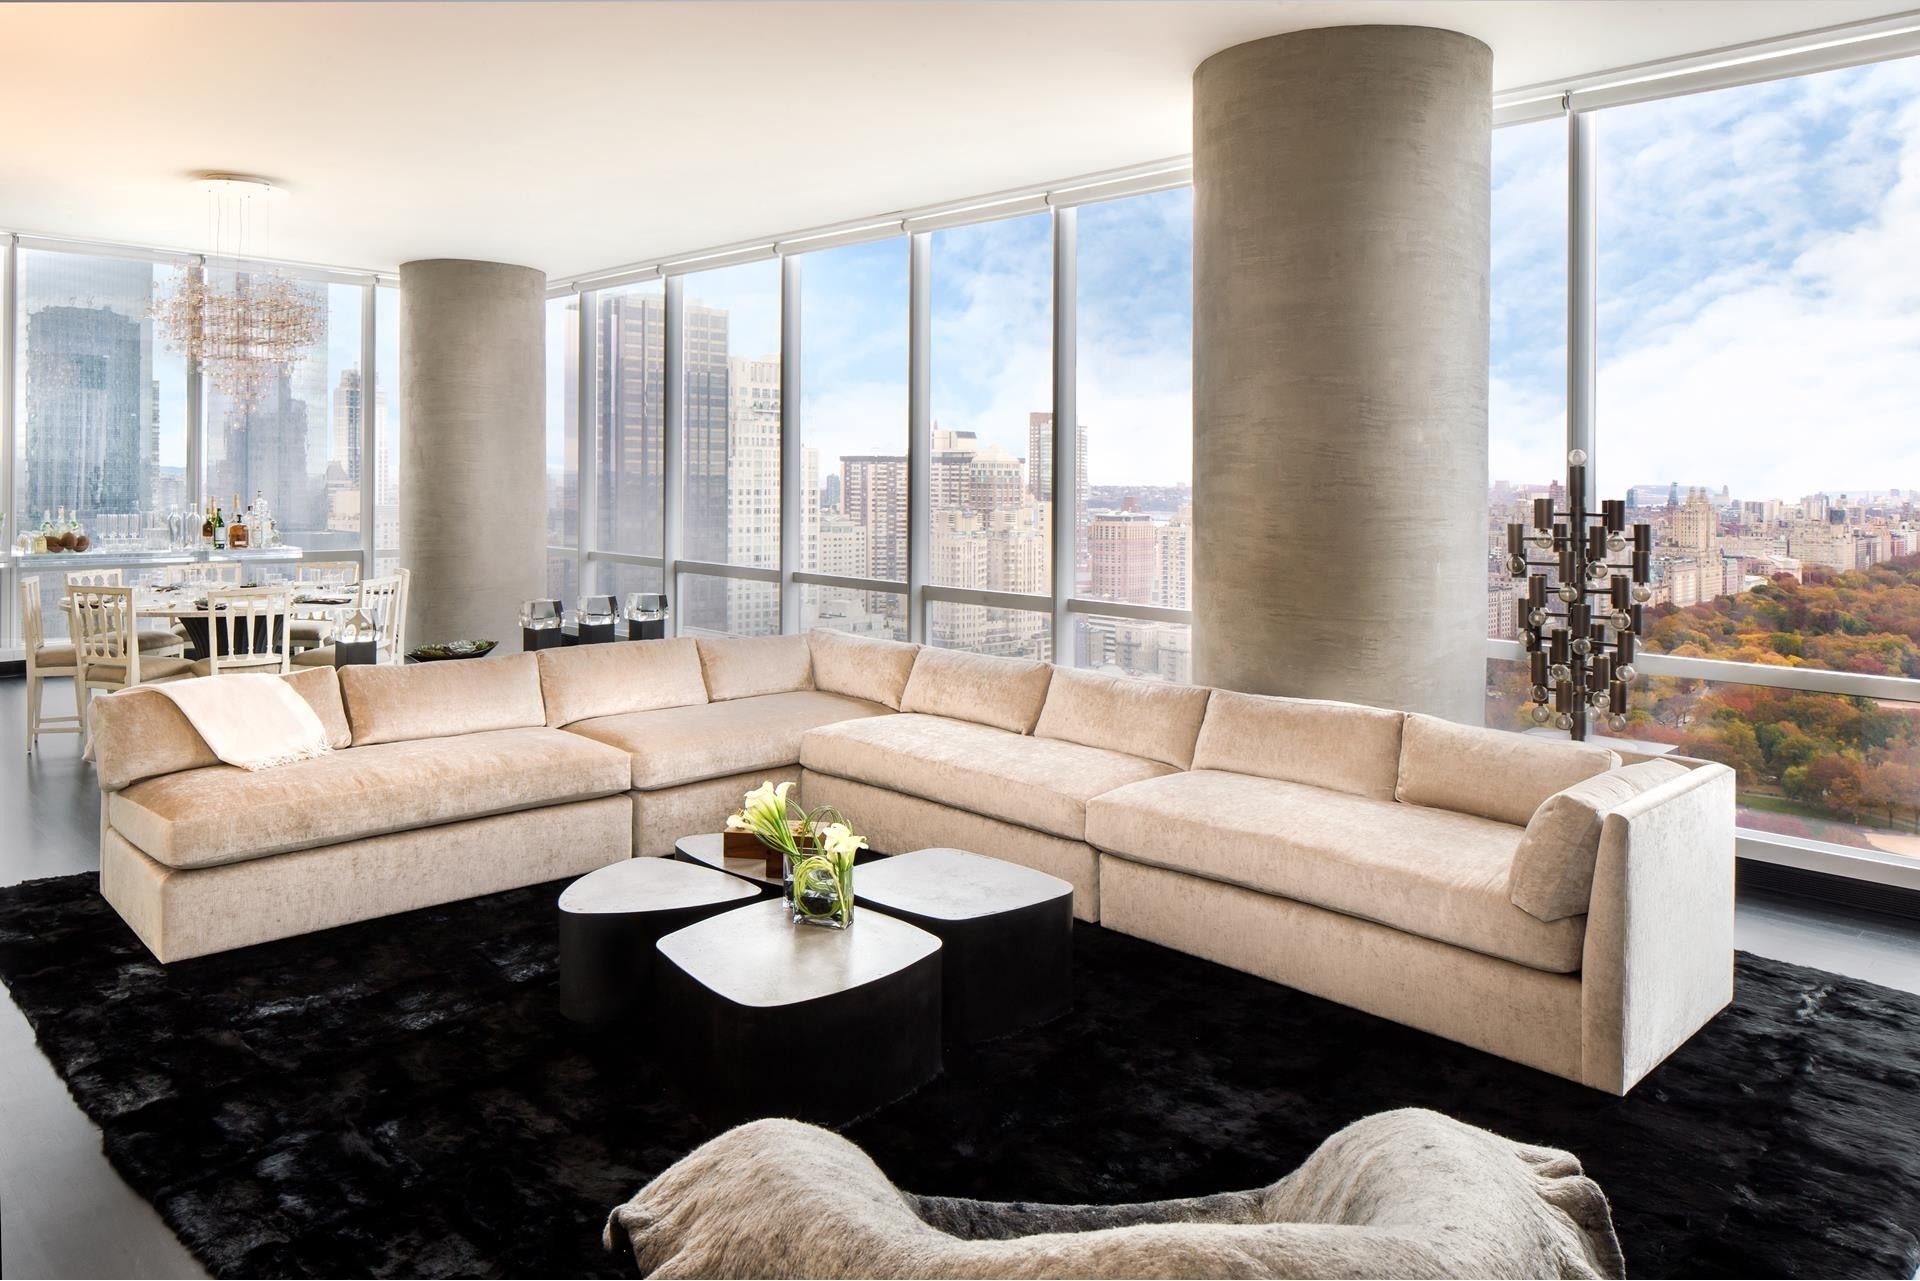 Property à One57, 157 West 57th St, 41A Midtown West, New York, NY 10019